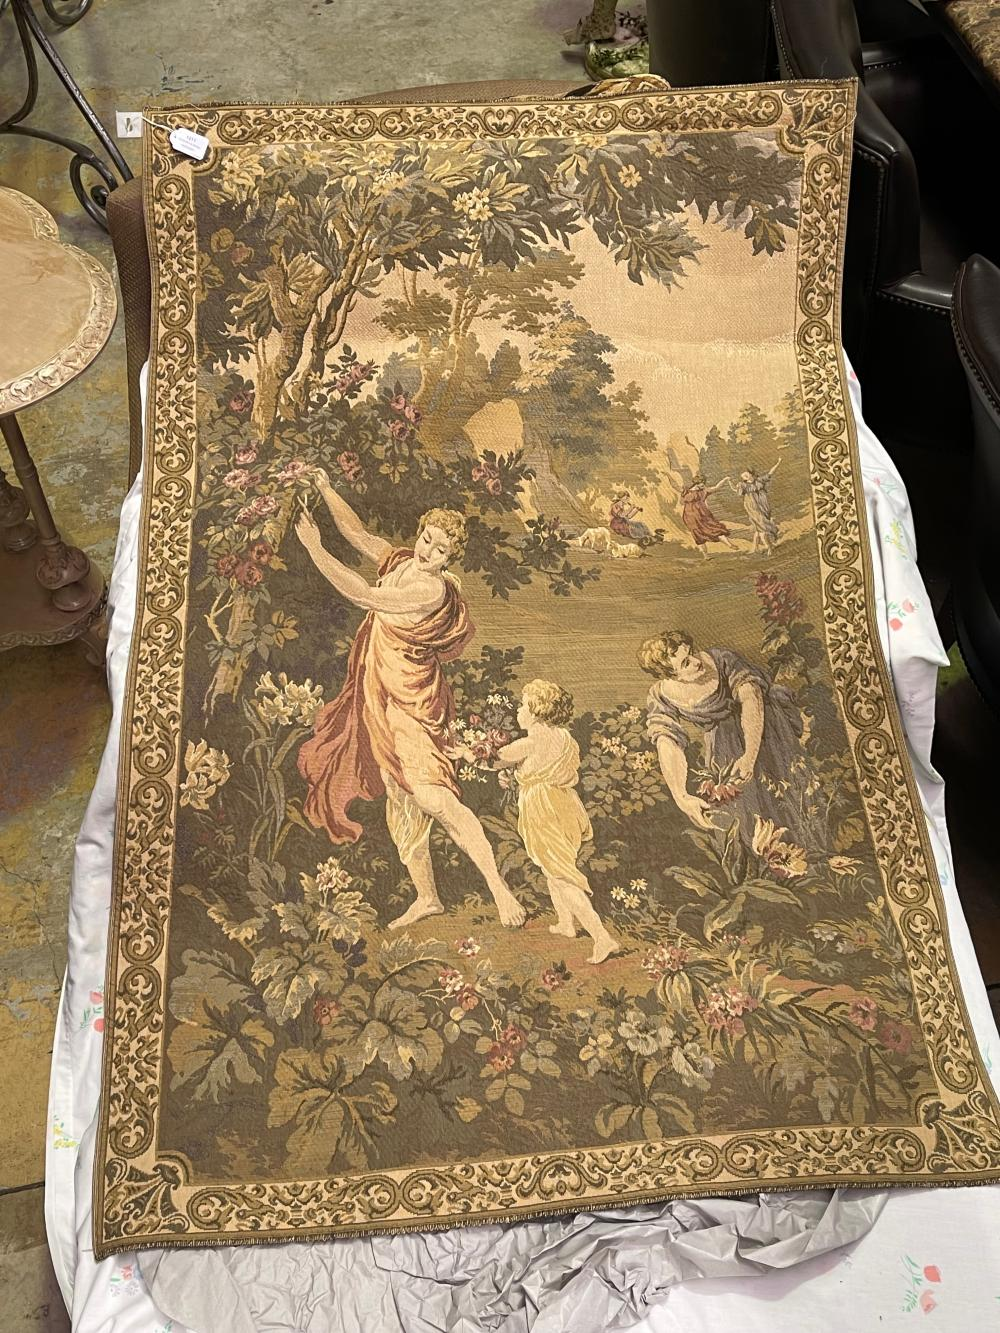 French style wall tapestry, approx 138cm x 90cm